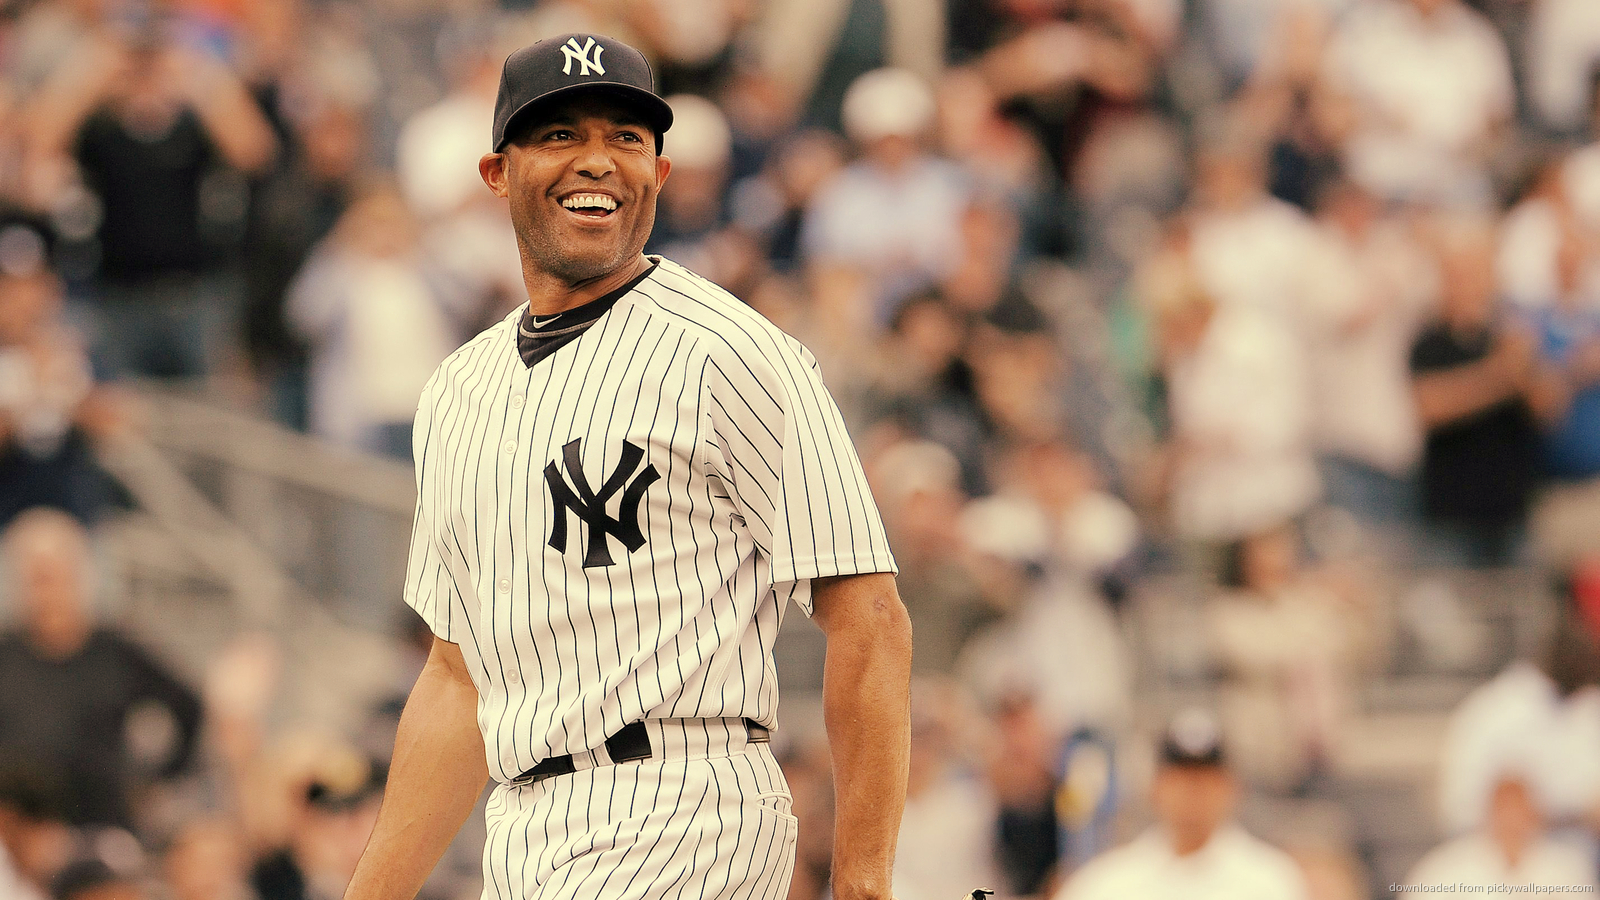 Mariano Rivera Wallpaper | 2015 Best Auto Reviews